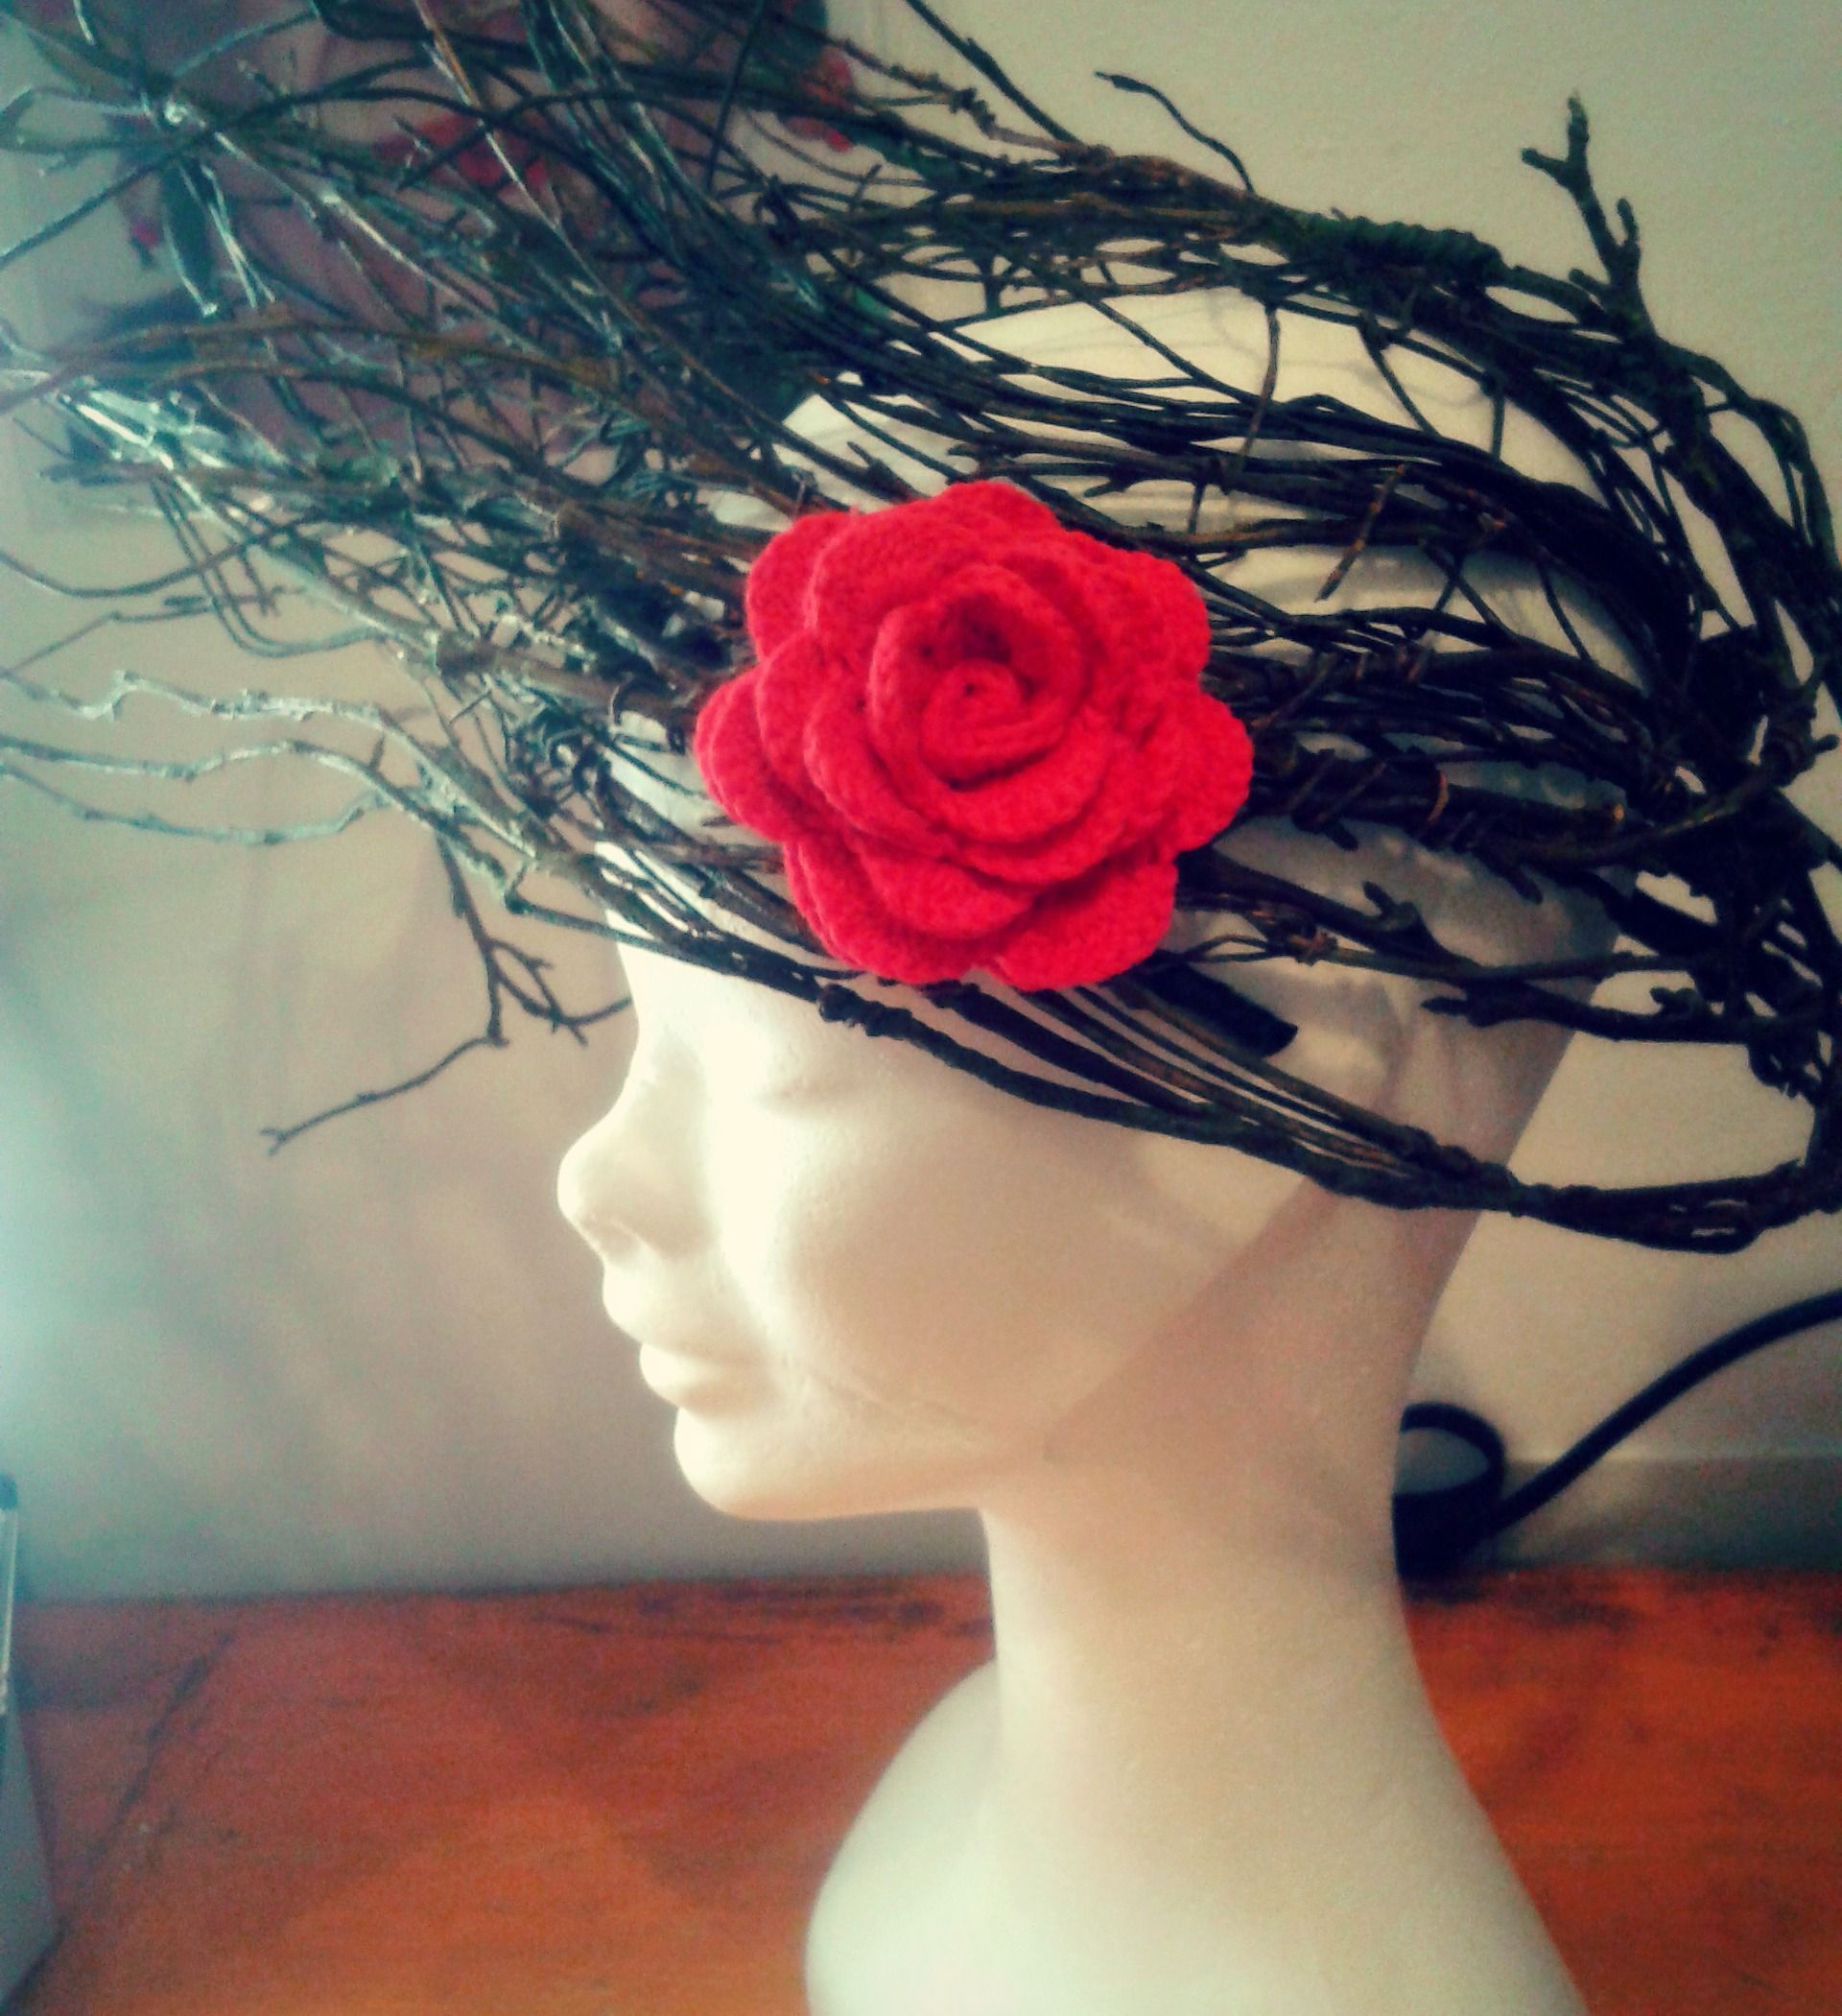 Crochet Handmade Hair Piece Red Rose Flower accessories custom. Uncinetto Accessori Capelli Rosa Rossa personalizzata fatta a mano